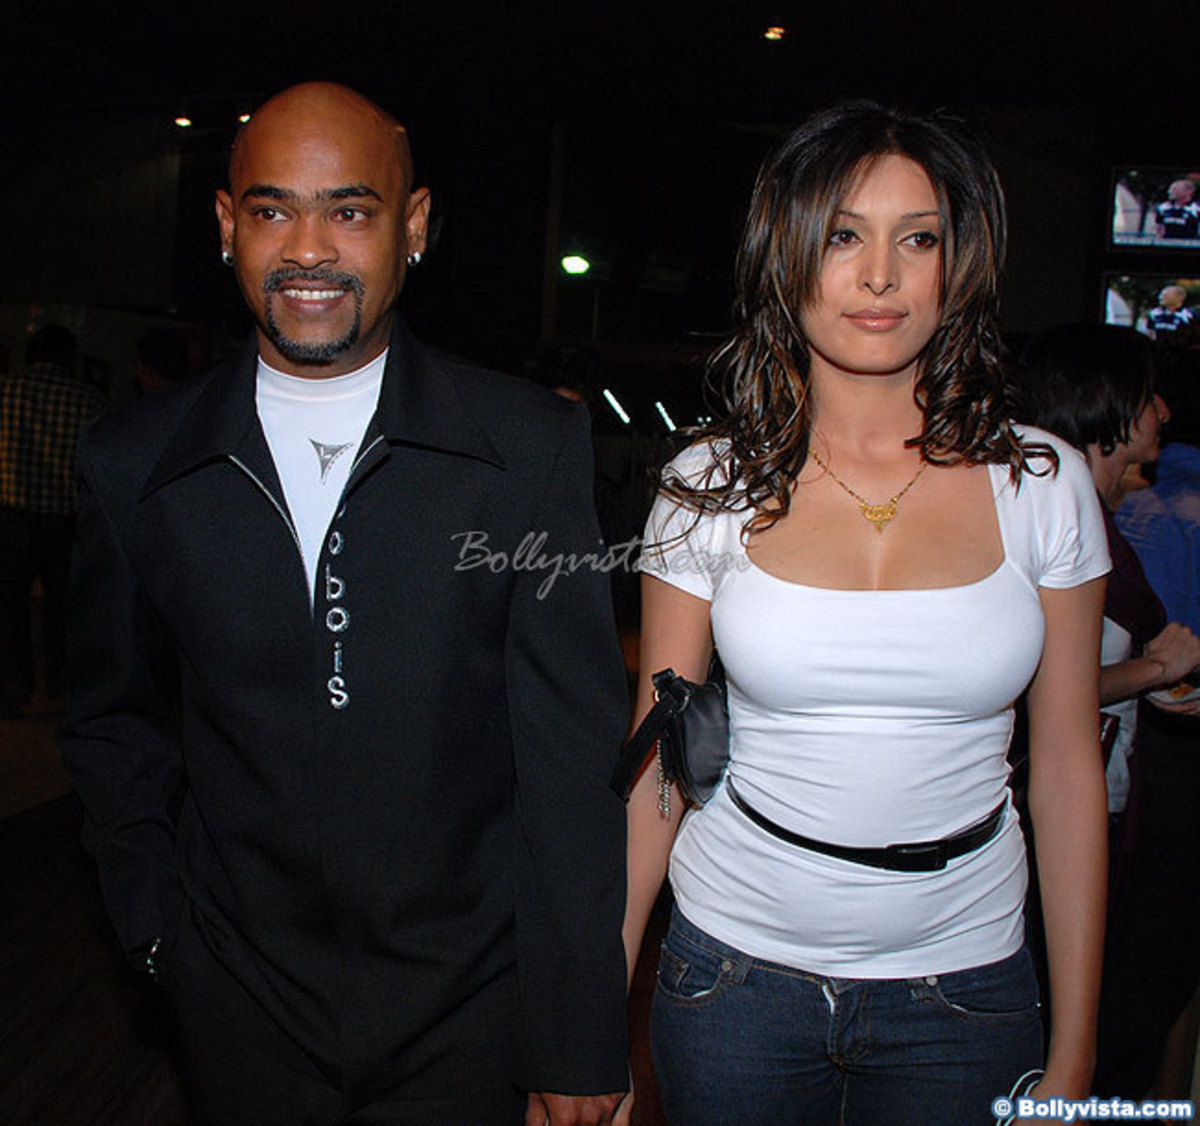 Vinod Kambli and Andrea pictures